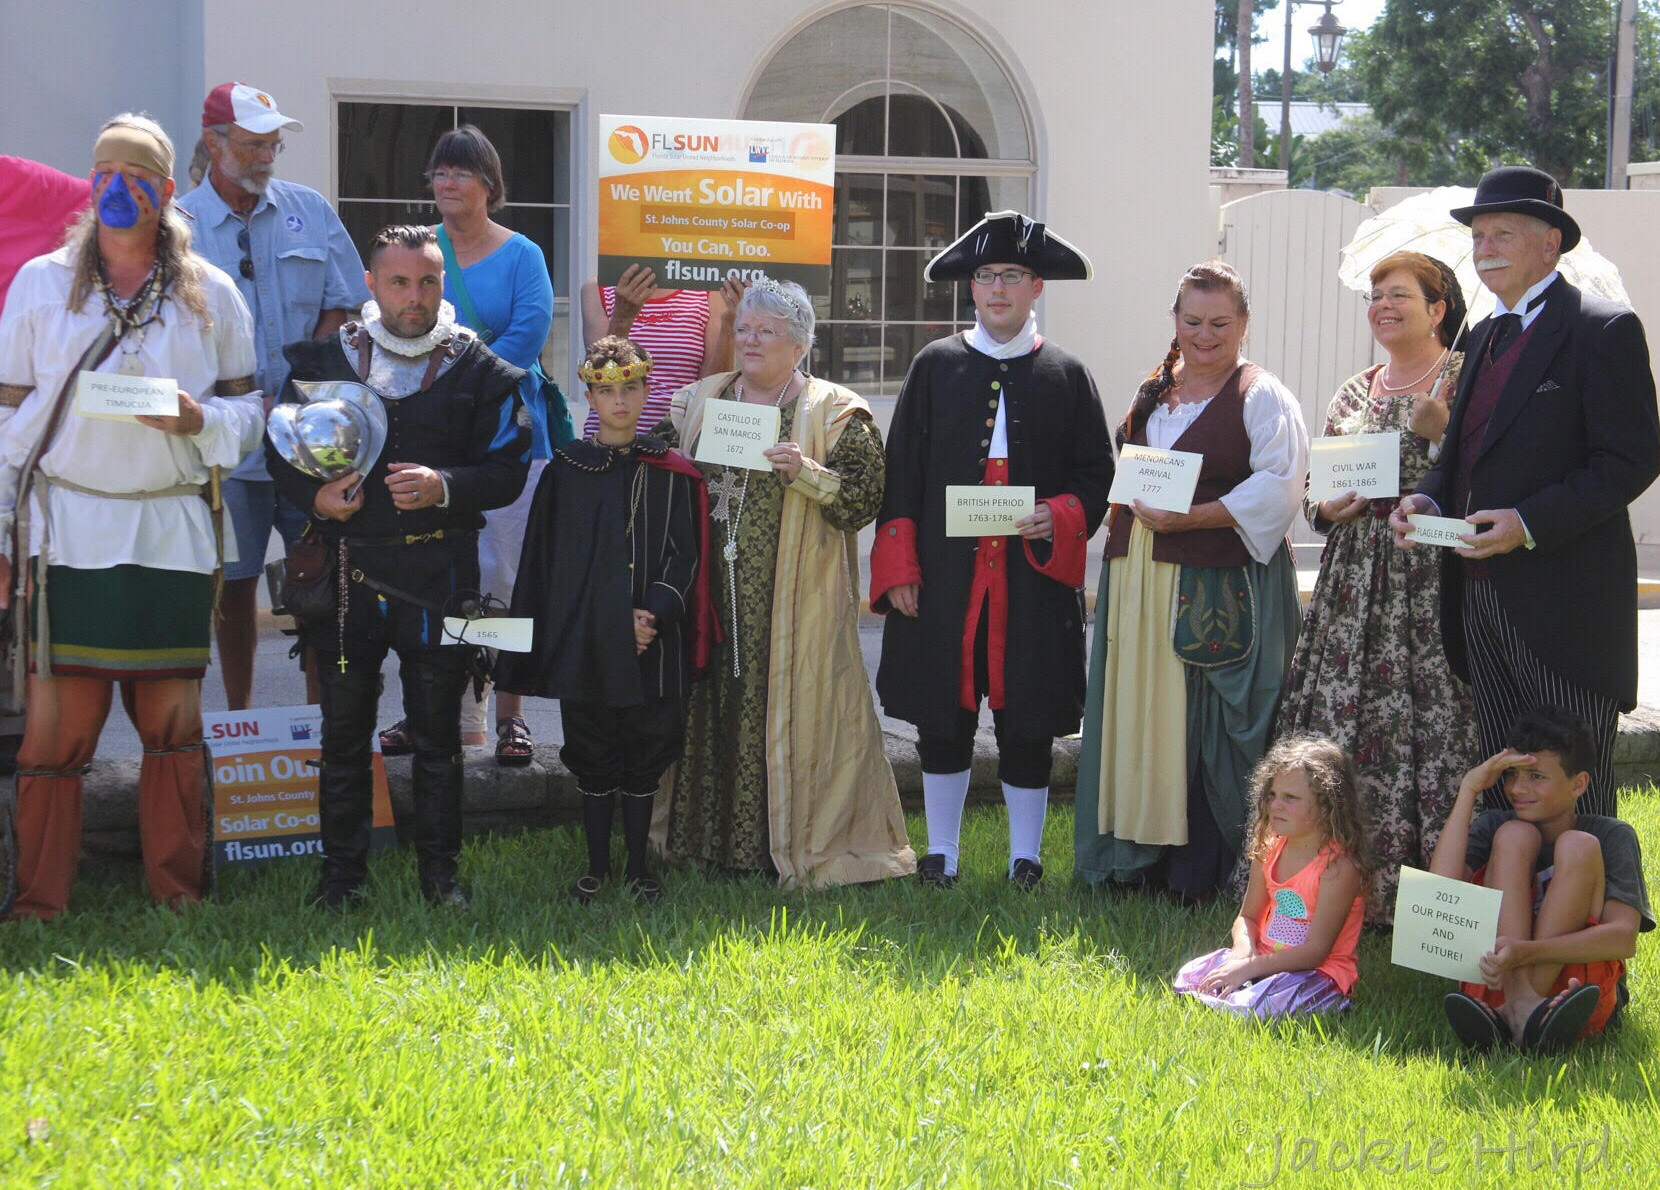 Historical re-enactors stand with signs at the solar cooperative launch event.